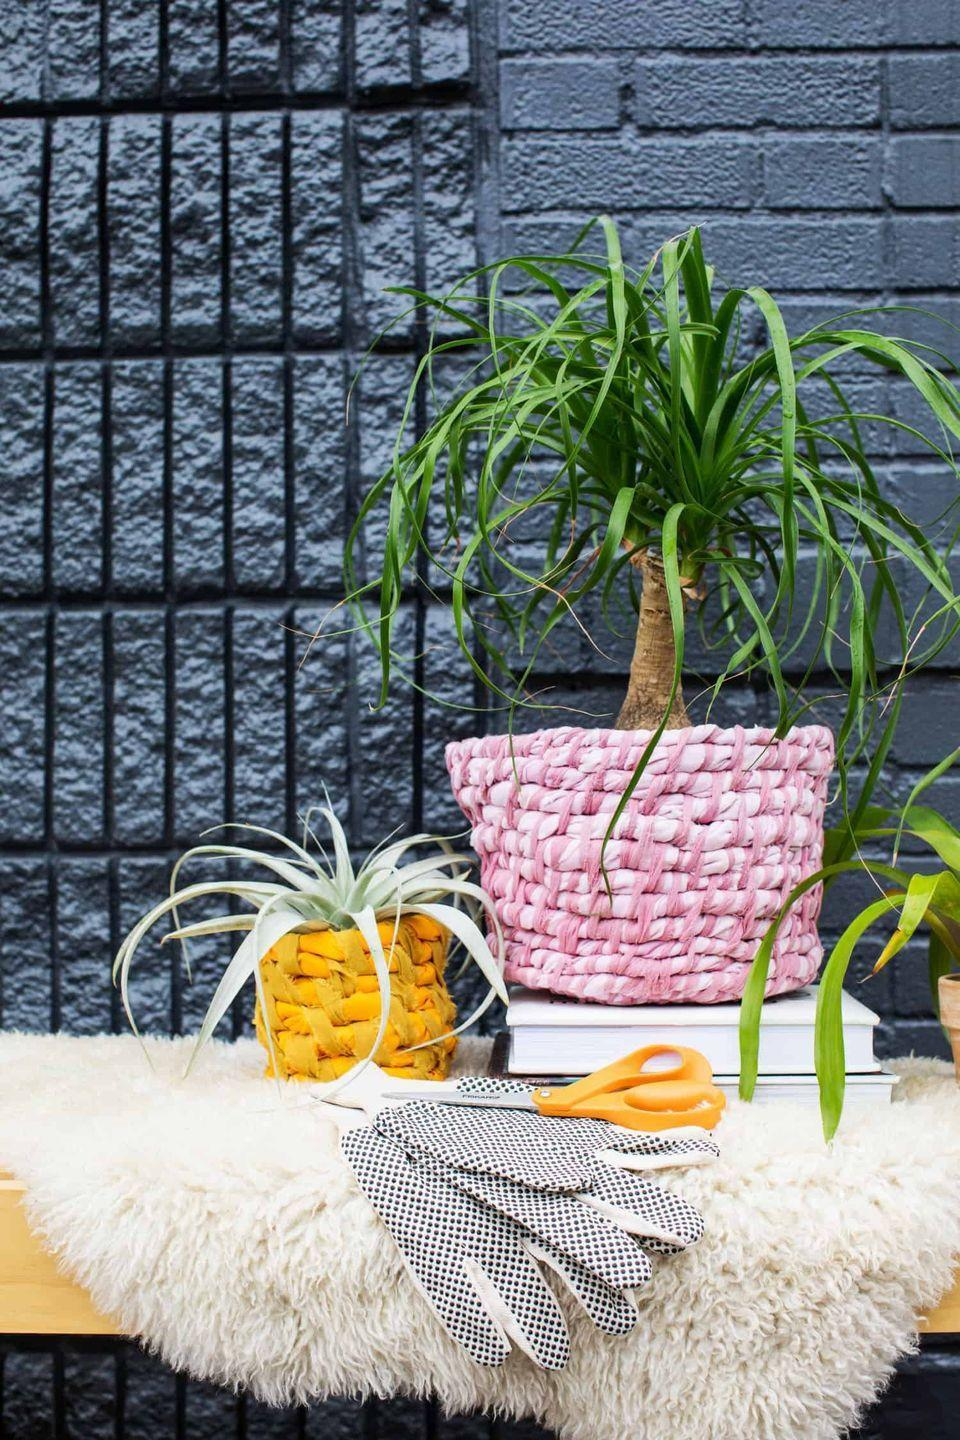 """<p>Fabric has become the material of choice for many modern planters. It looks particularly appealing in these shades of pink and orange. </p><p><strong>Get the tutorial at <a href=""""https://abeautifulmess.com/easy-fabric-planter-diy/"""" rel=""""nofollow noopener"""" target=""""_blank"""" data-ylk=""""slk:A Beautiful Mess"""" class=""""link rapid-noclick-resp"""">A Beautiful Mess</a>.</strong></p><p><a class=""""link rapid-noclick-resp"""" href=""""https://go.redirectingat.com?id=74968X1596630&url=https%3A%2F%2Fwww.walmart.com%2Fip%2F100-Pcs-DIY-Plastic-Needles-Tapestry-Sewing-Wool-Yarn-Children-Crochet-Hand-Tool-100-Tool%2F951838557&sref=https%3A%2F%2Fwww.thepioneerwoman.com%2Fhome-lifestyle%2Fgardening%2Fg36556911%2Fdiy-planters%2F"""" rel=""""nofollow noopener"""" target=""""_blank"""" data-ylk=""""slk:SHOP PLASTIC TAPESTRY NEEDLES"""">SHOP PLASTIC TAPESTRY NEEDLES</a></p>"""